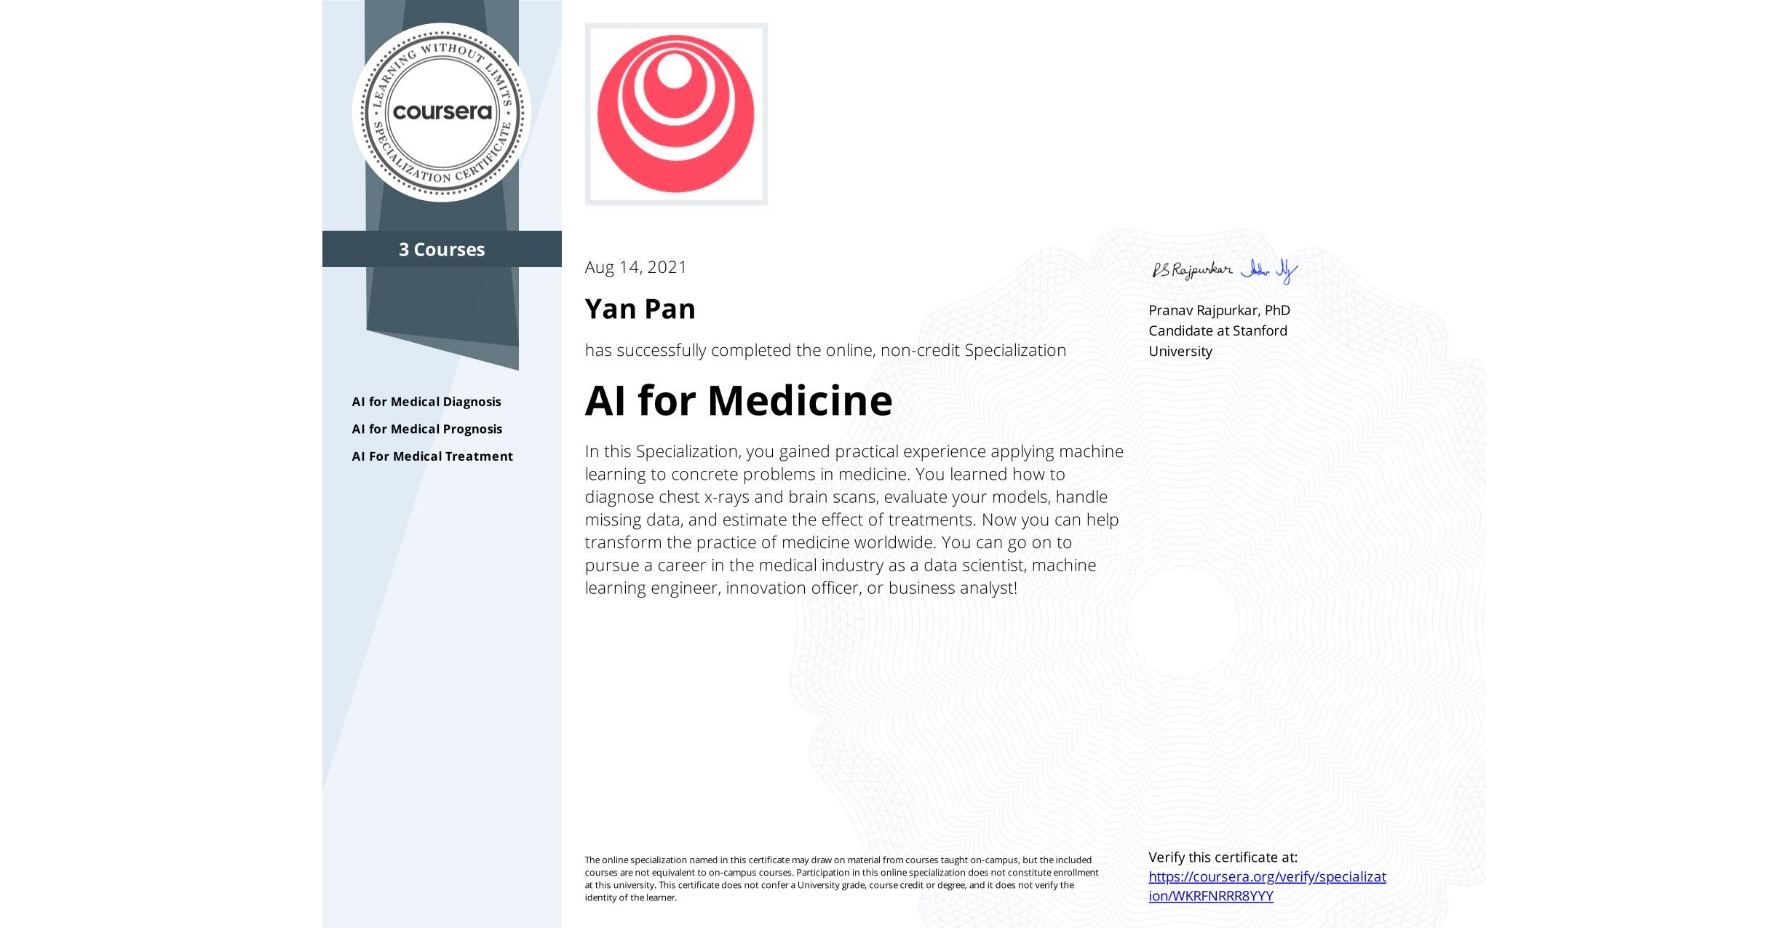 View certificate for Yan Pan, AI for Medicine, offered through Coursera. In this Specialization, you gained practical experience applying machine learning to concrete problems in medicine. You learned how to diagnose chest x-rays and brain scans, evaluate your models, handle missing data, and estimate the effect of treatments.   Now you can help transform the practice of medicine worldwide. You can go on to pursue a career in the medical industry as a data scientist, machine learning engineer, innovation officer, or business analyst!